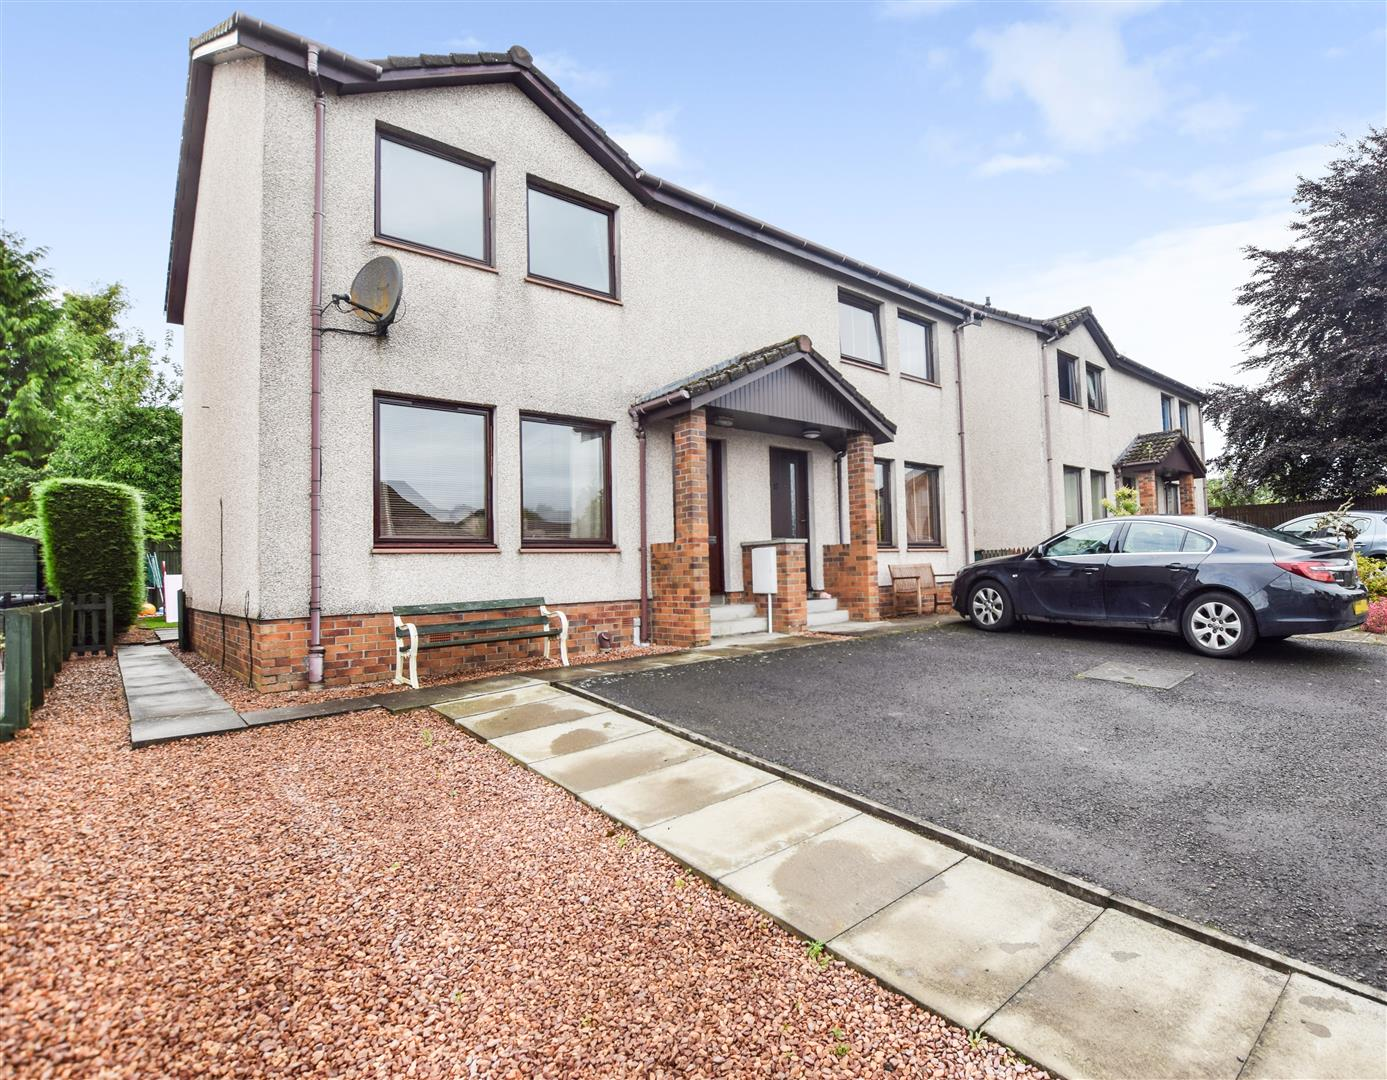 19, Honeyberry Crescent, Rattray, BLAIRGOWRIE, Perthshire, PH10 7RD, UK